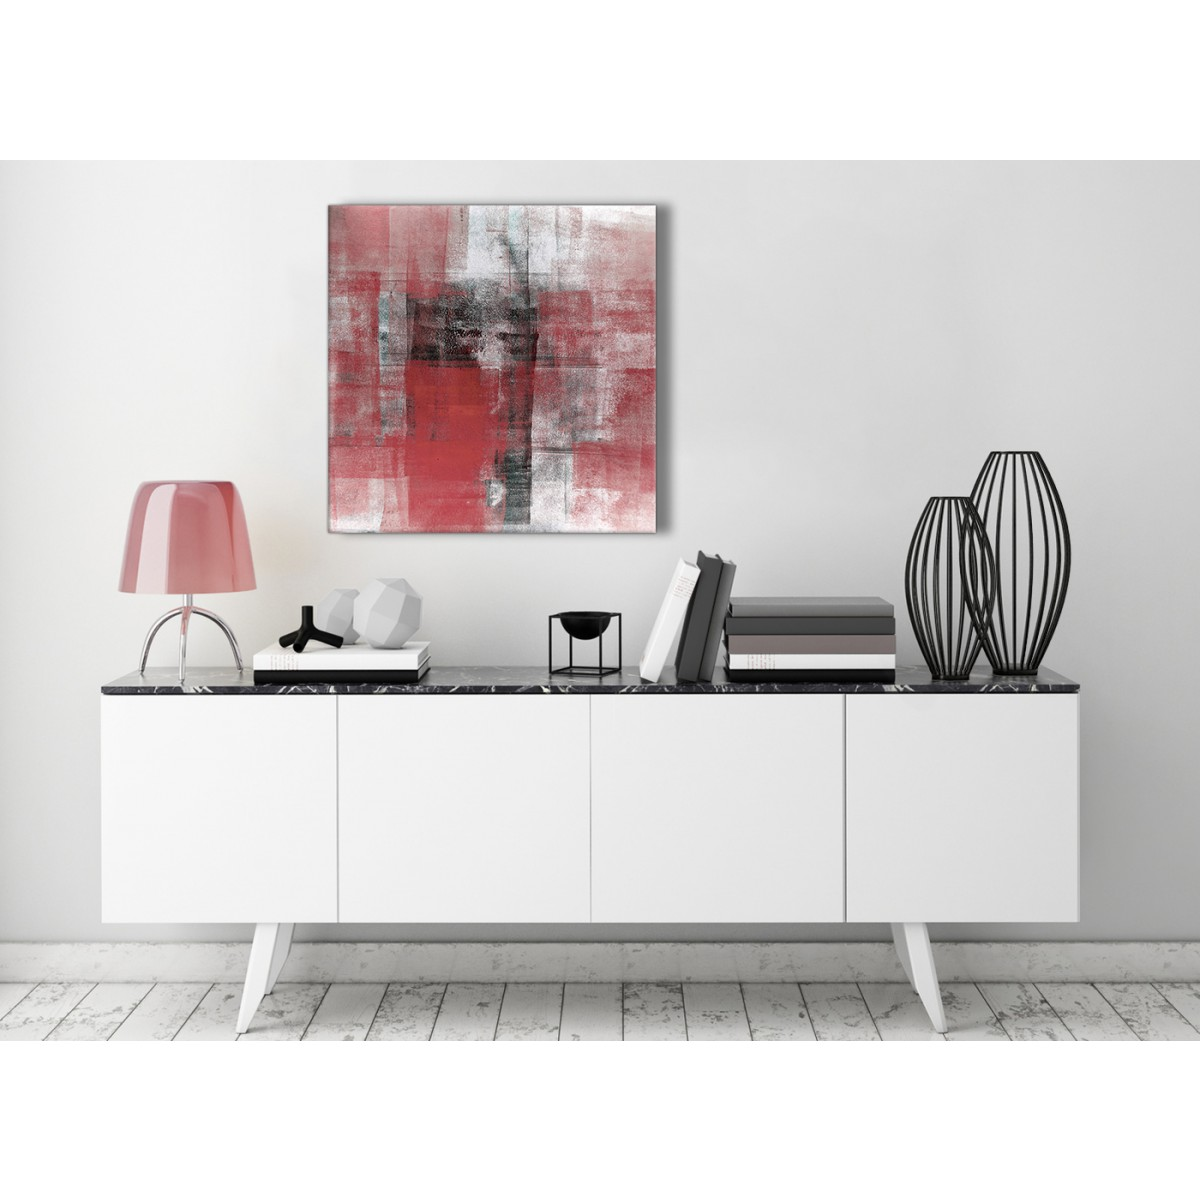 Red Black White Painting Stairway Canvas Pictures